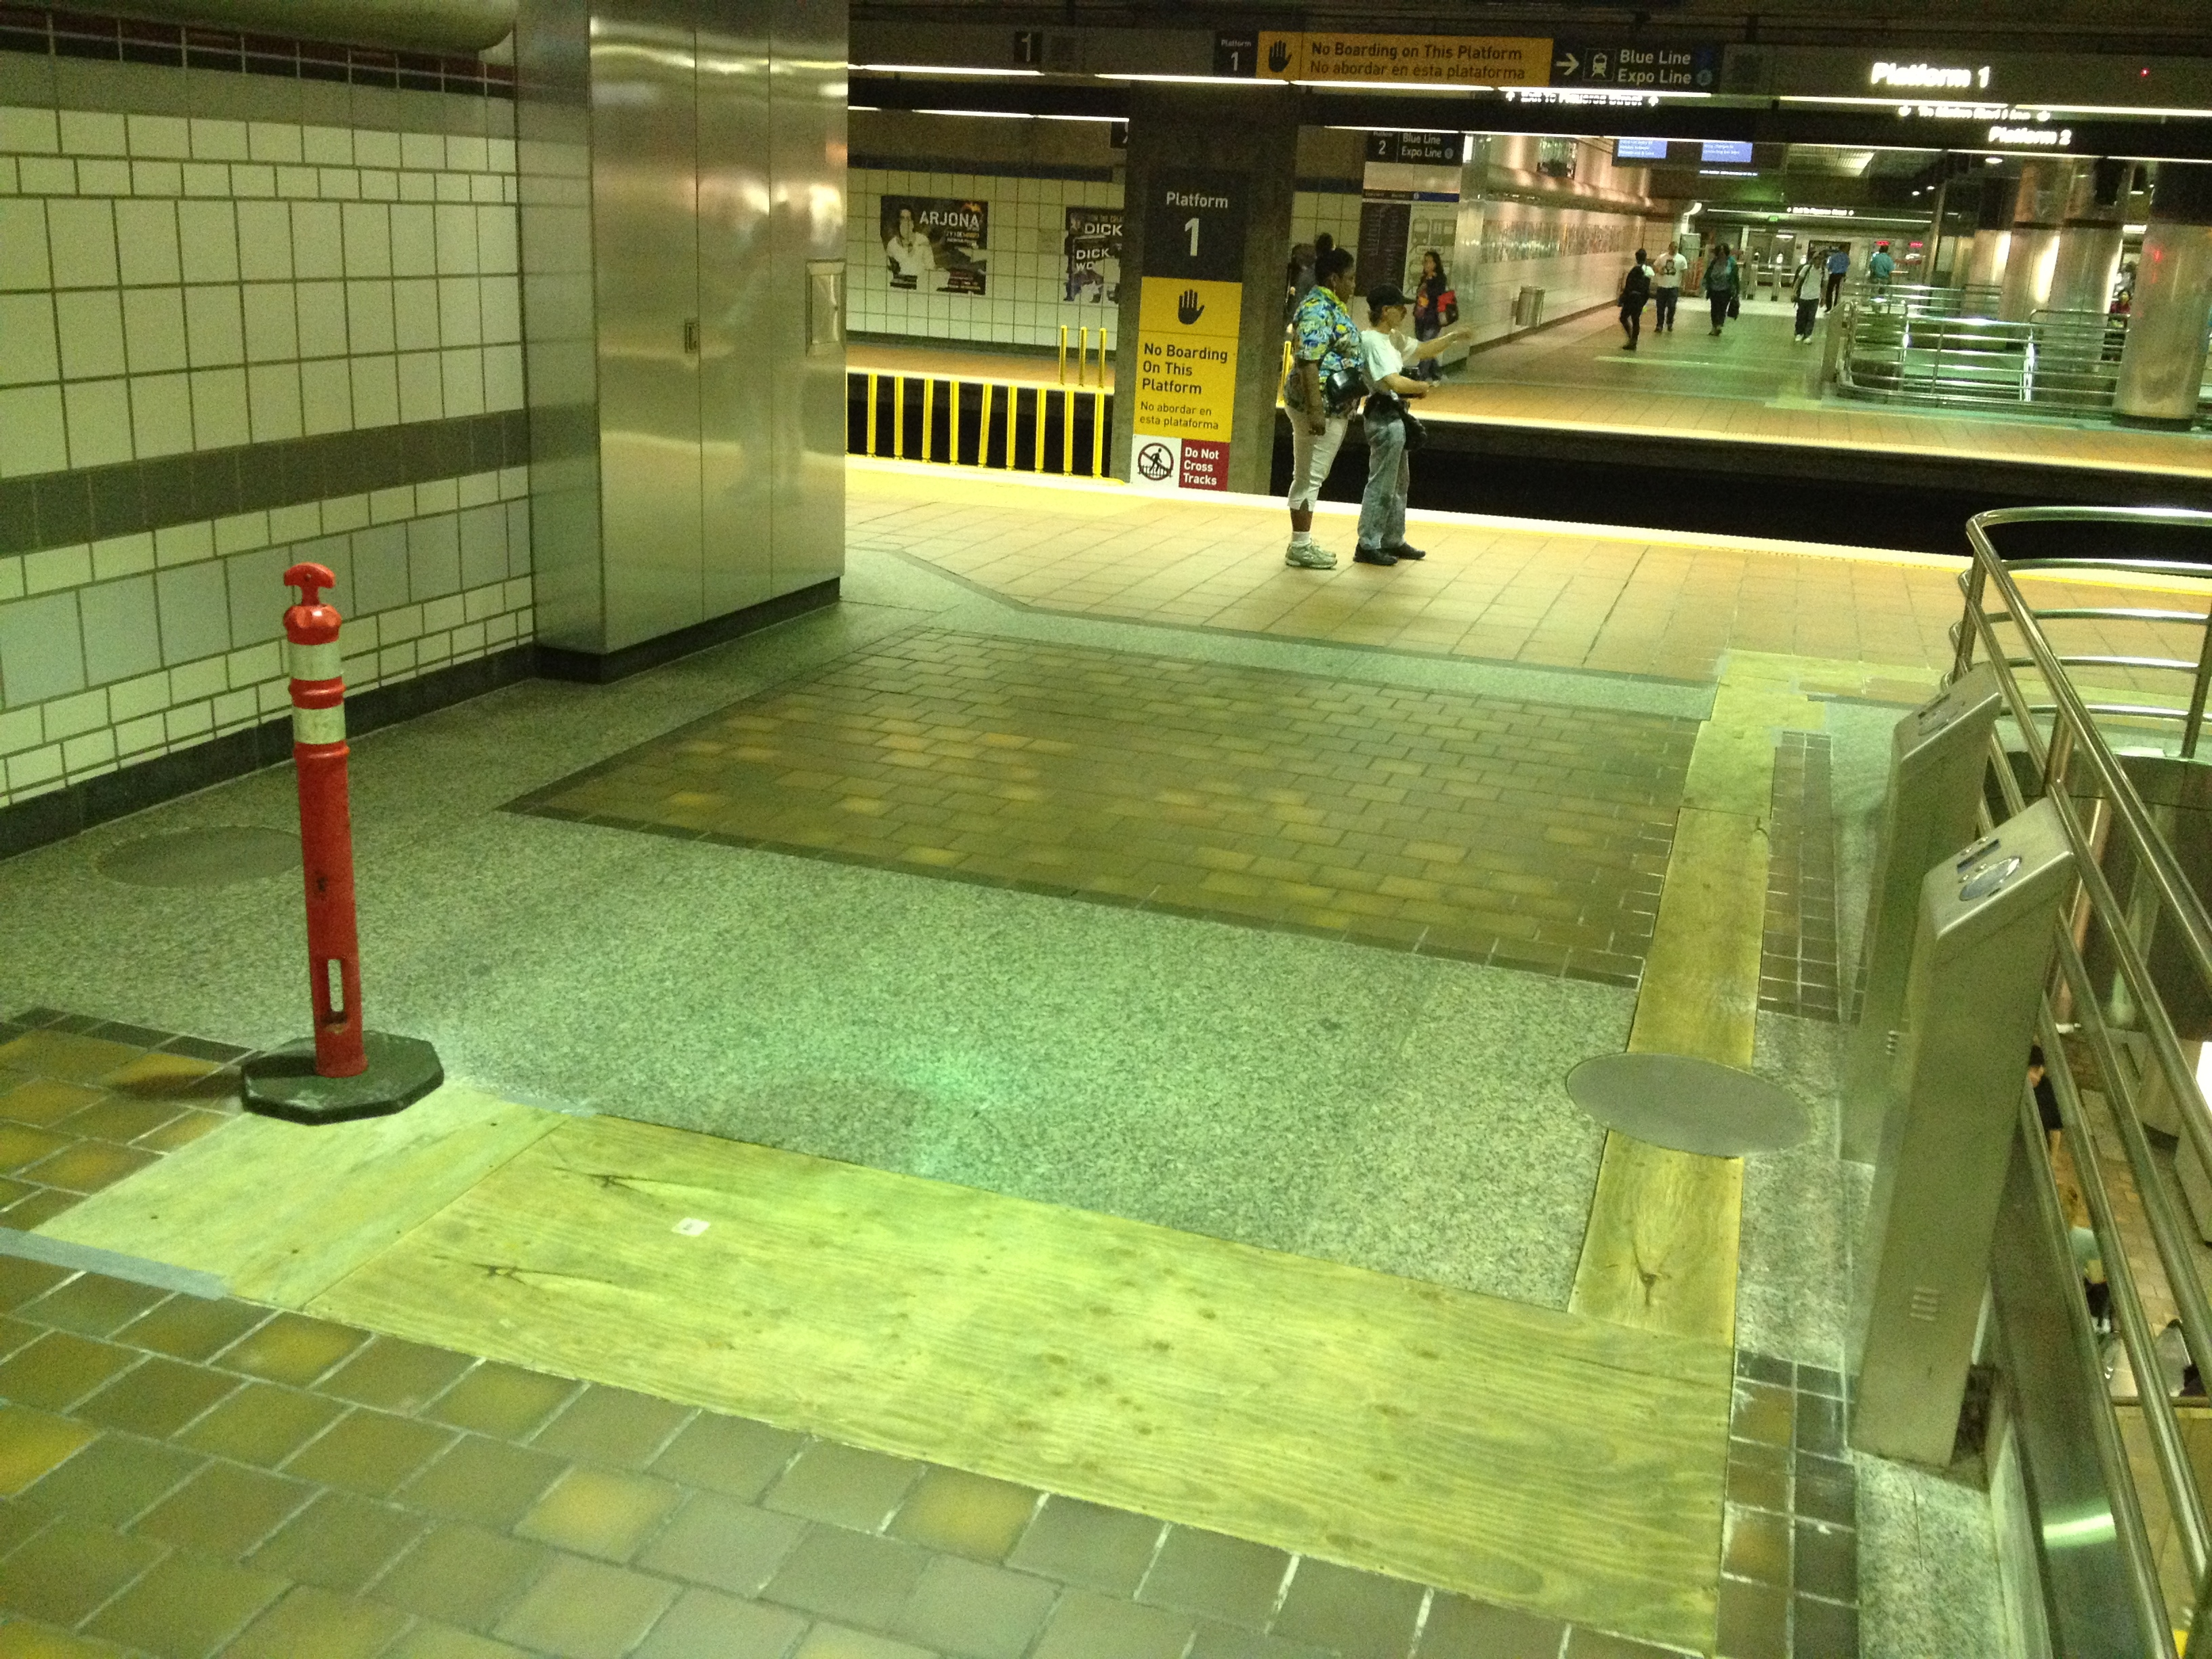 Early construction work involved removing a section of floor to install wires for the validators. Photo: Metro.